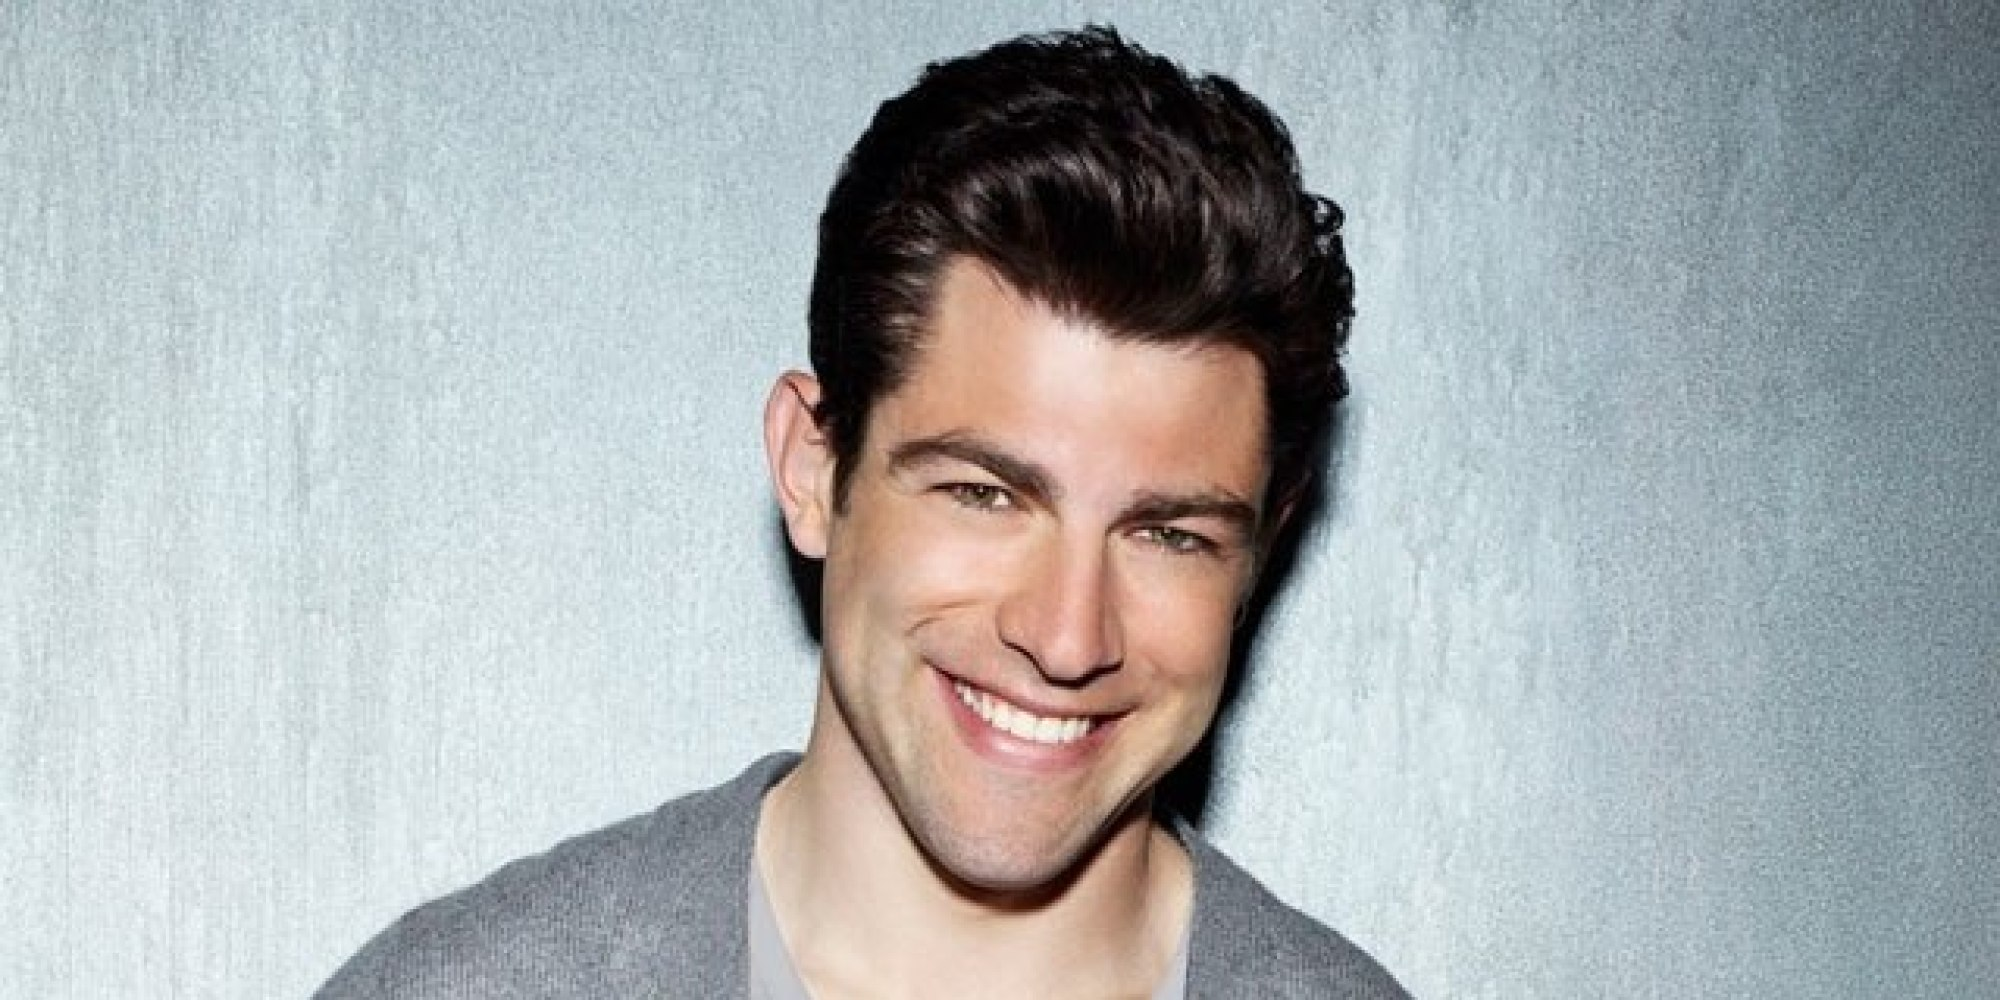 o-MAX-GREENFIELD-QUIT-ACTING-facebook